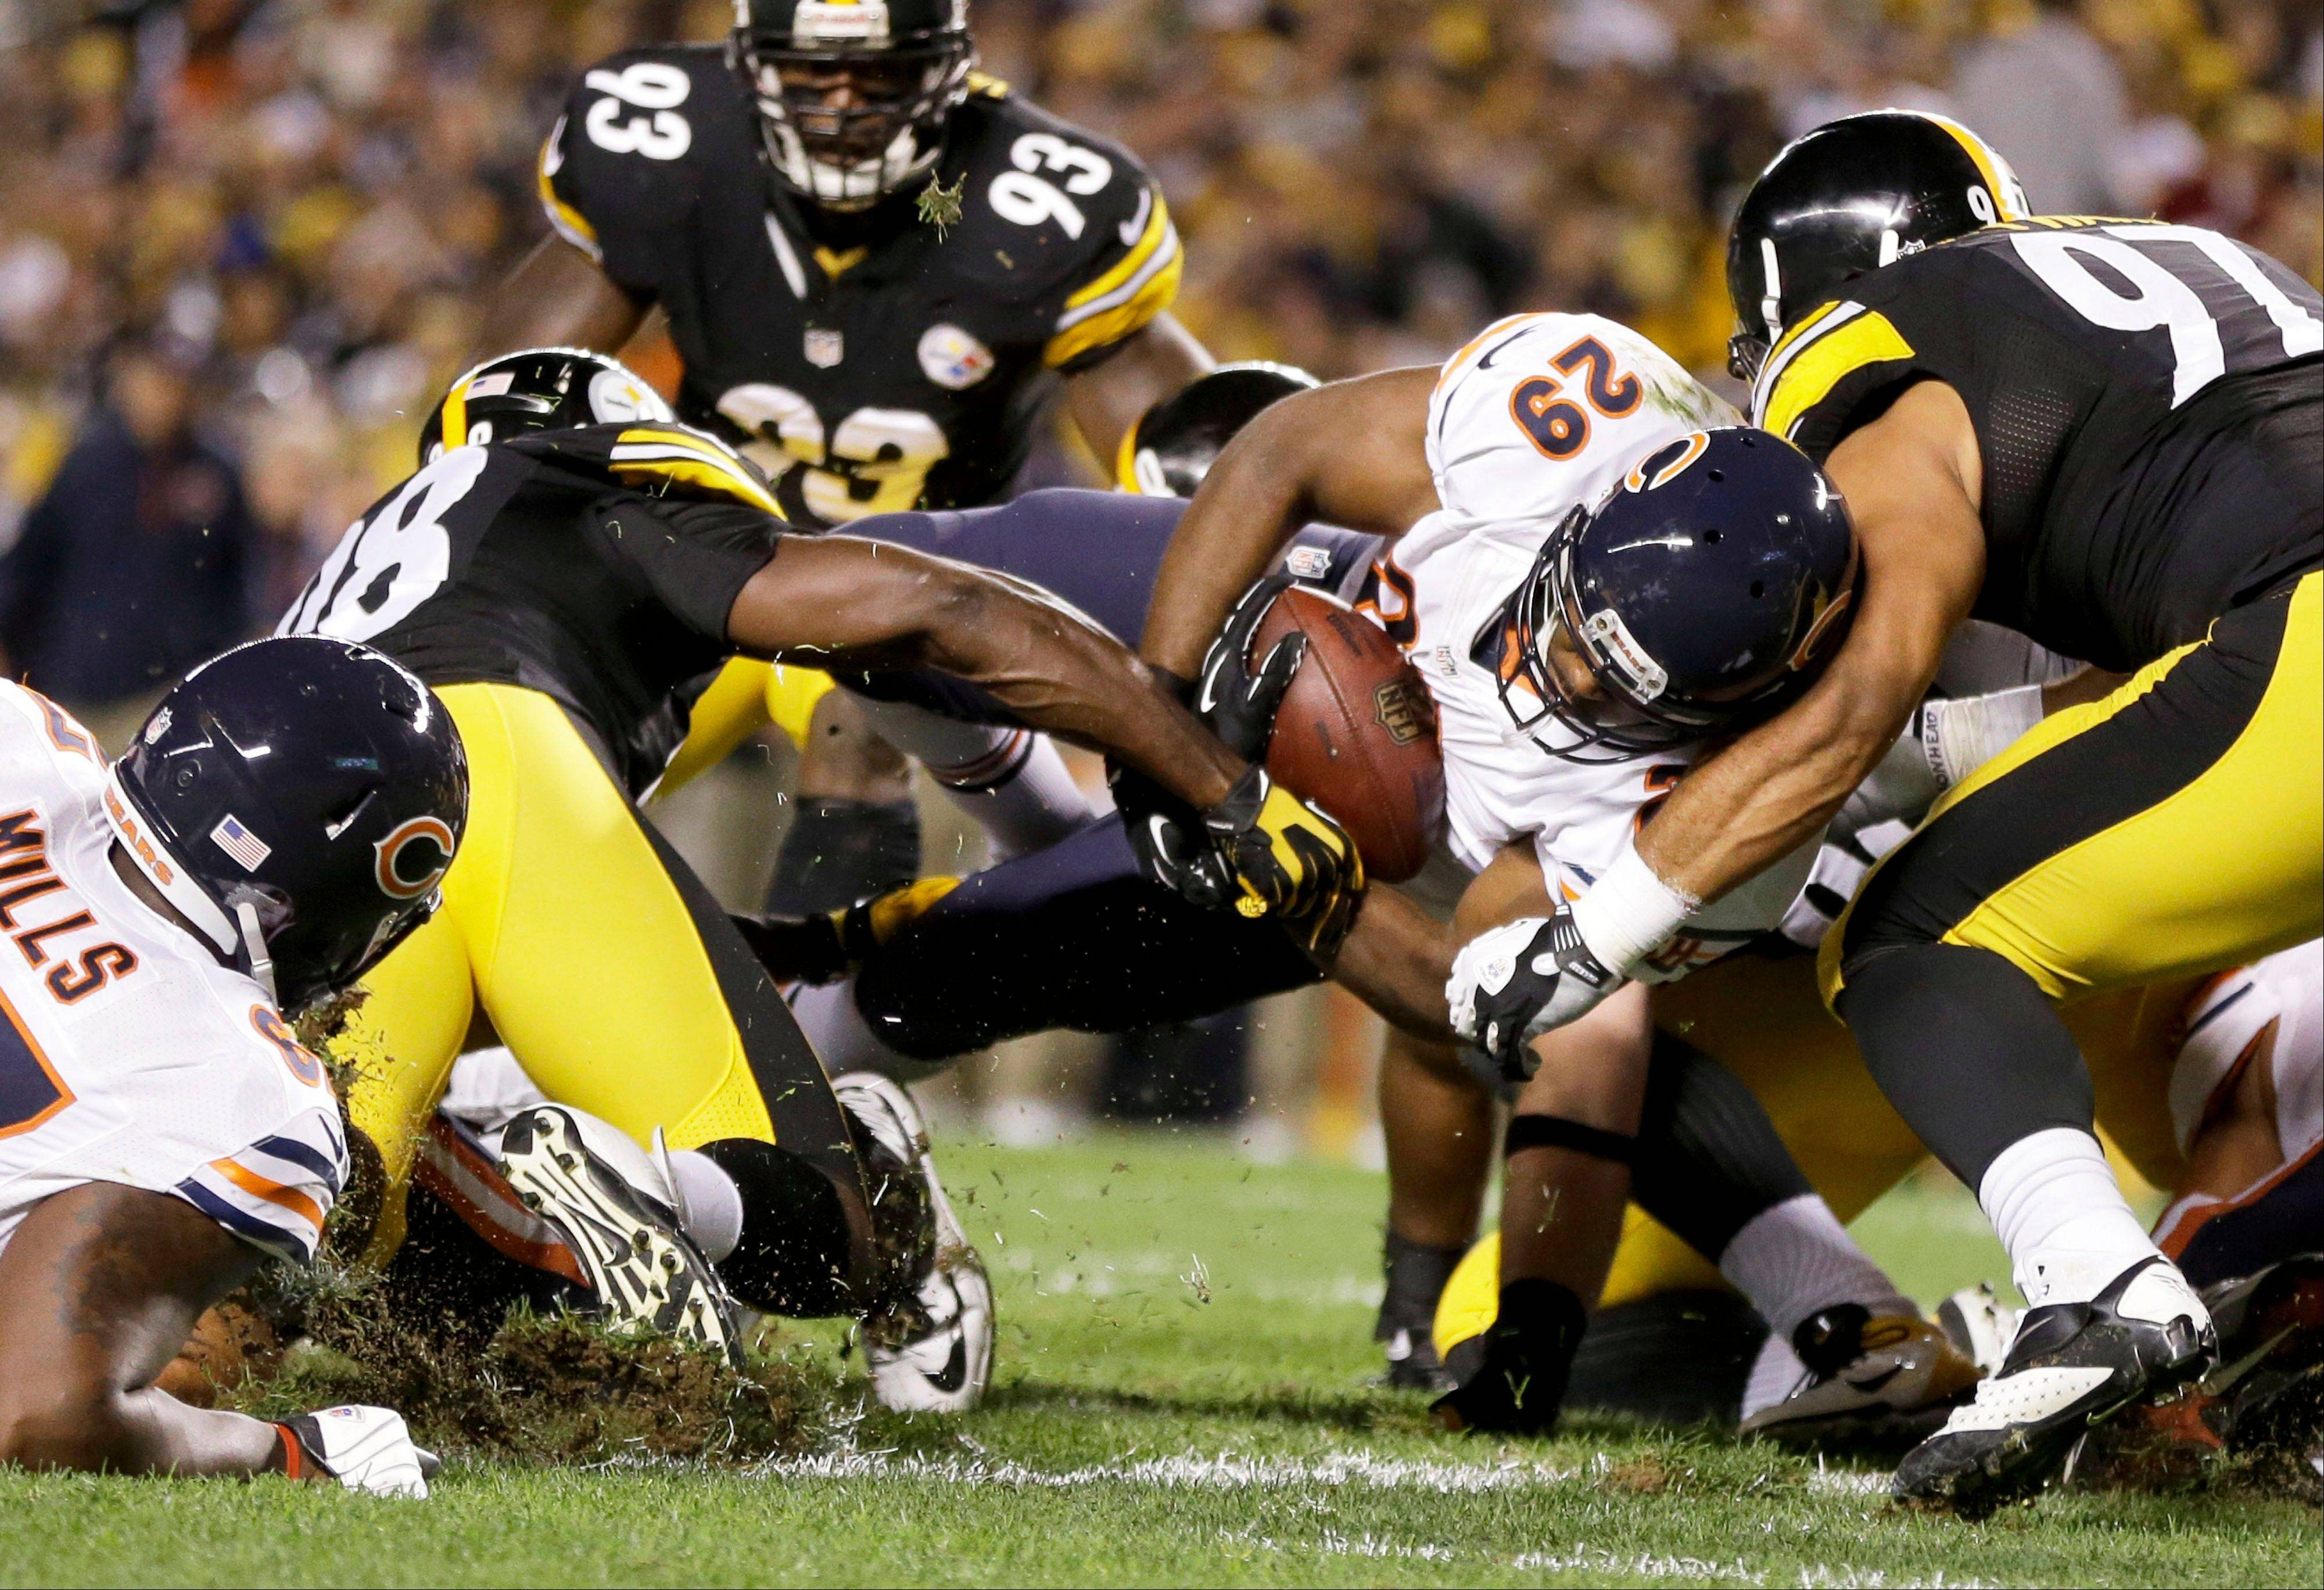 Bears running back Michael Bush scores a touchdown between Steelers linebacker Vince Williams (98) and defensive end Cameron Heyward (97) in the first quarter Sunday at Pittsburgh.